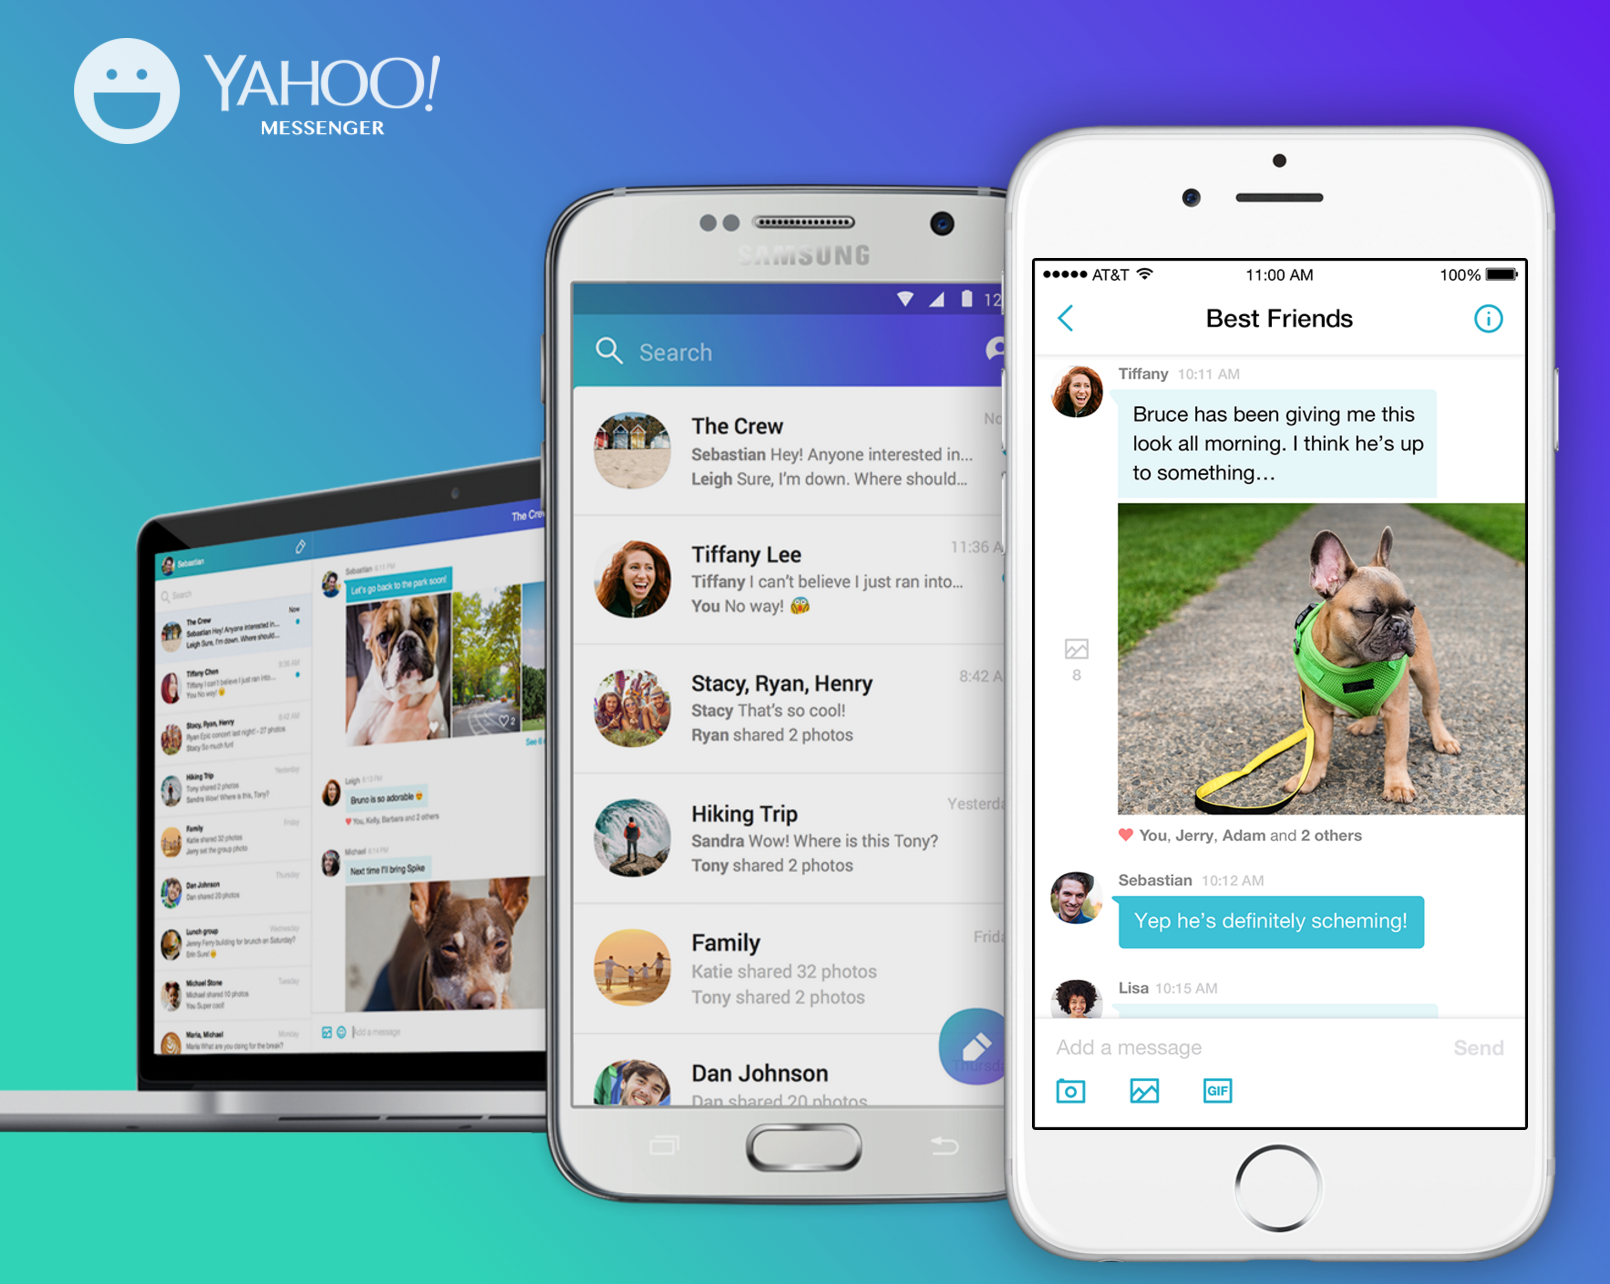 Iconic Yahoo Messenger will shut down after 20 years